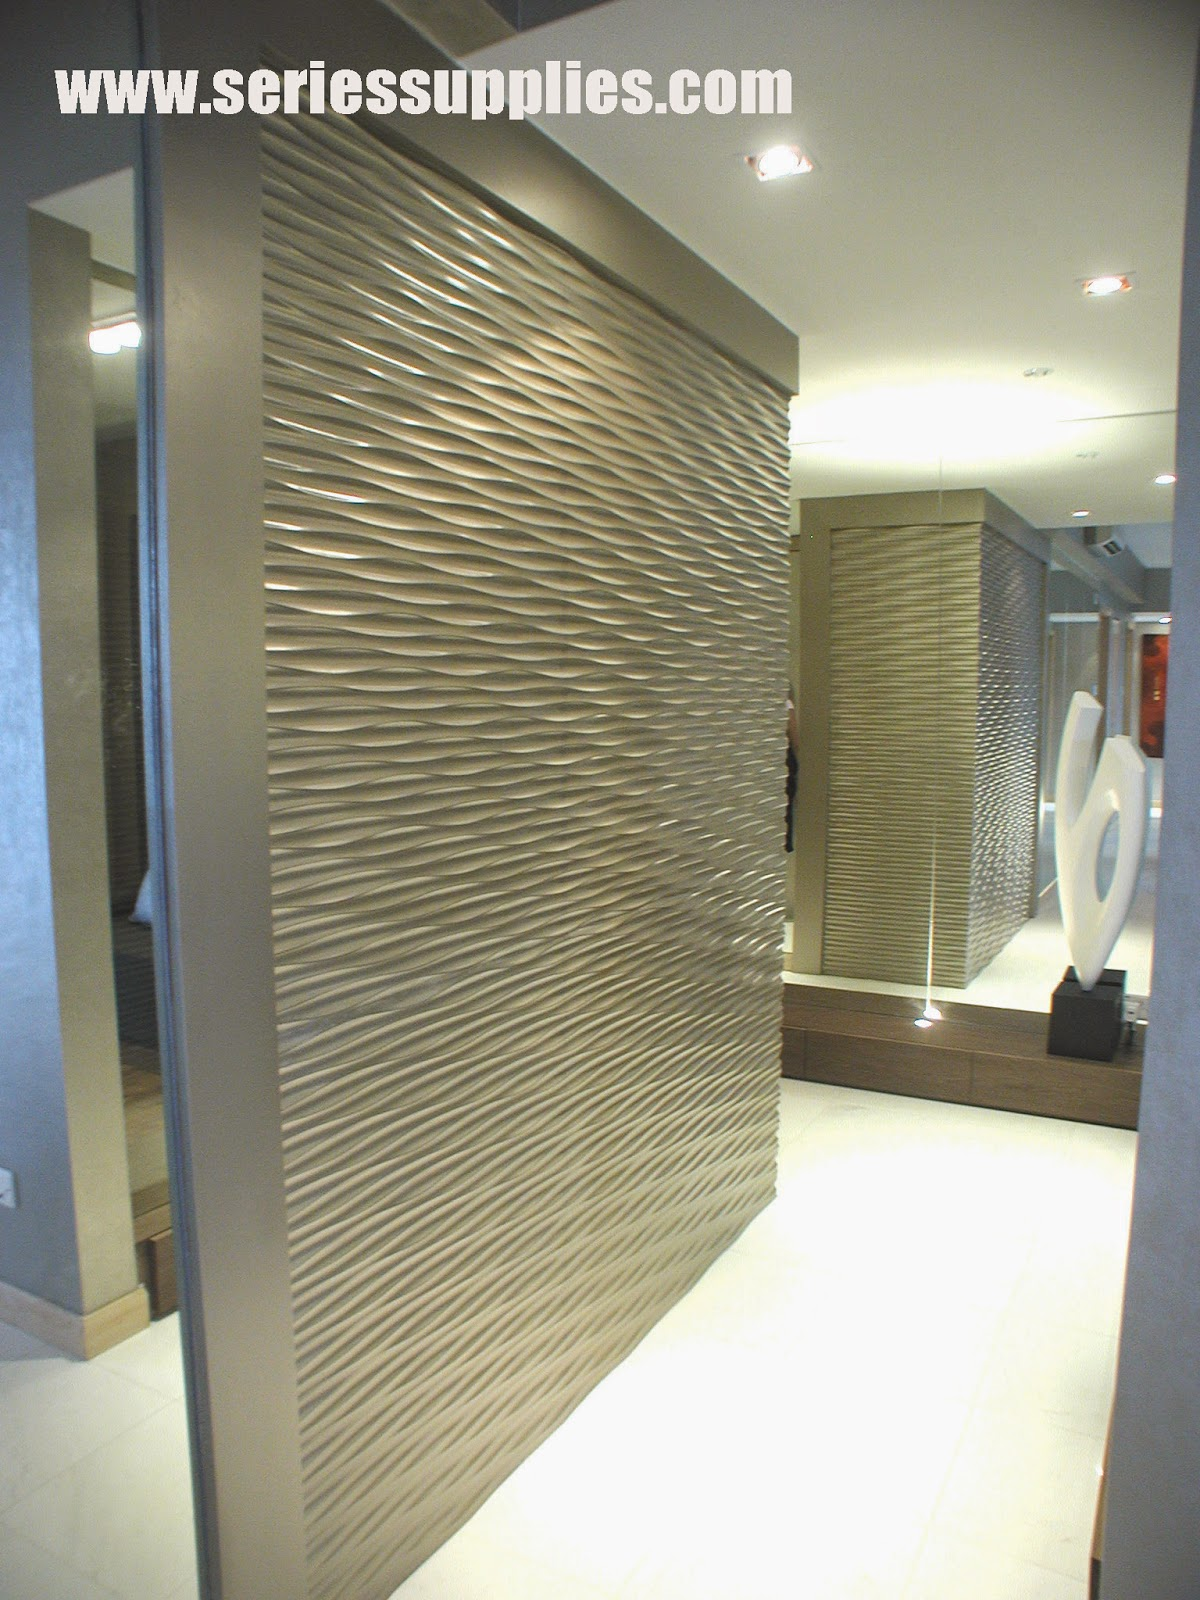 Design wall panels singapore wall design ideas amipublicfo Images